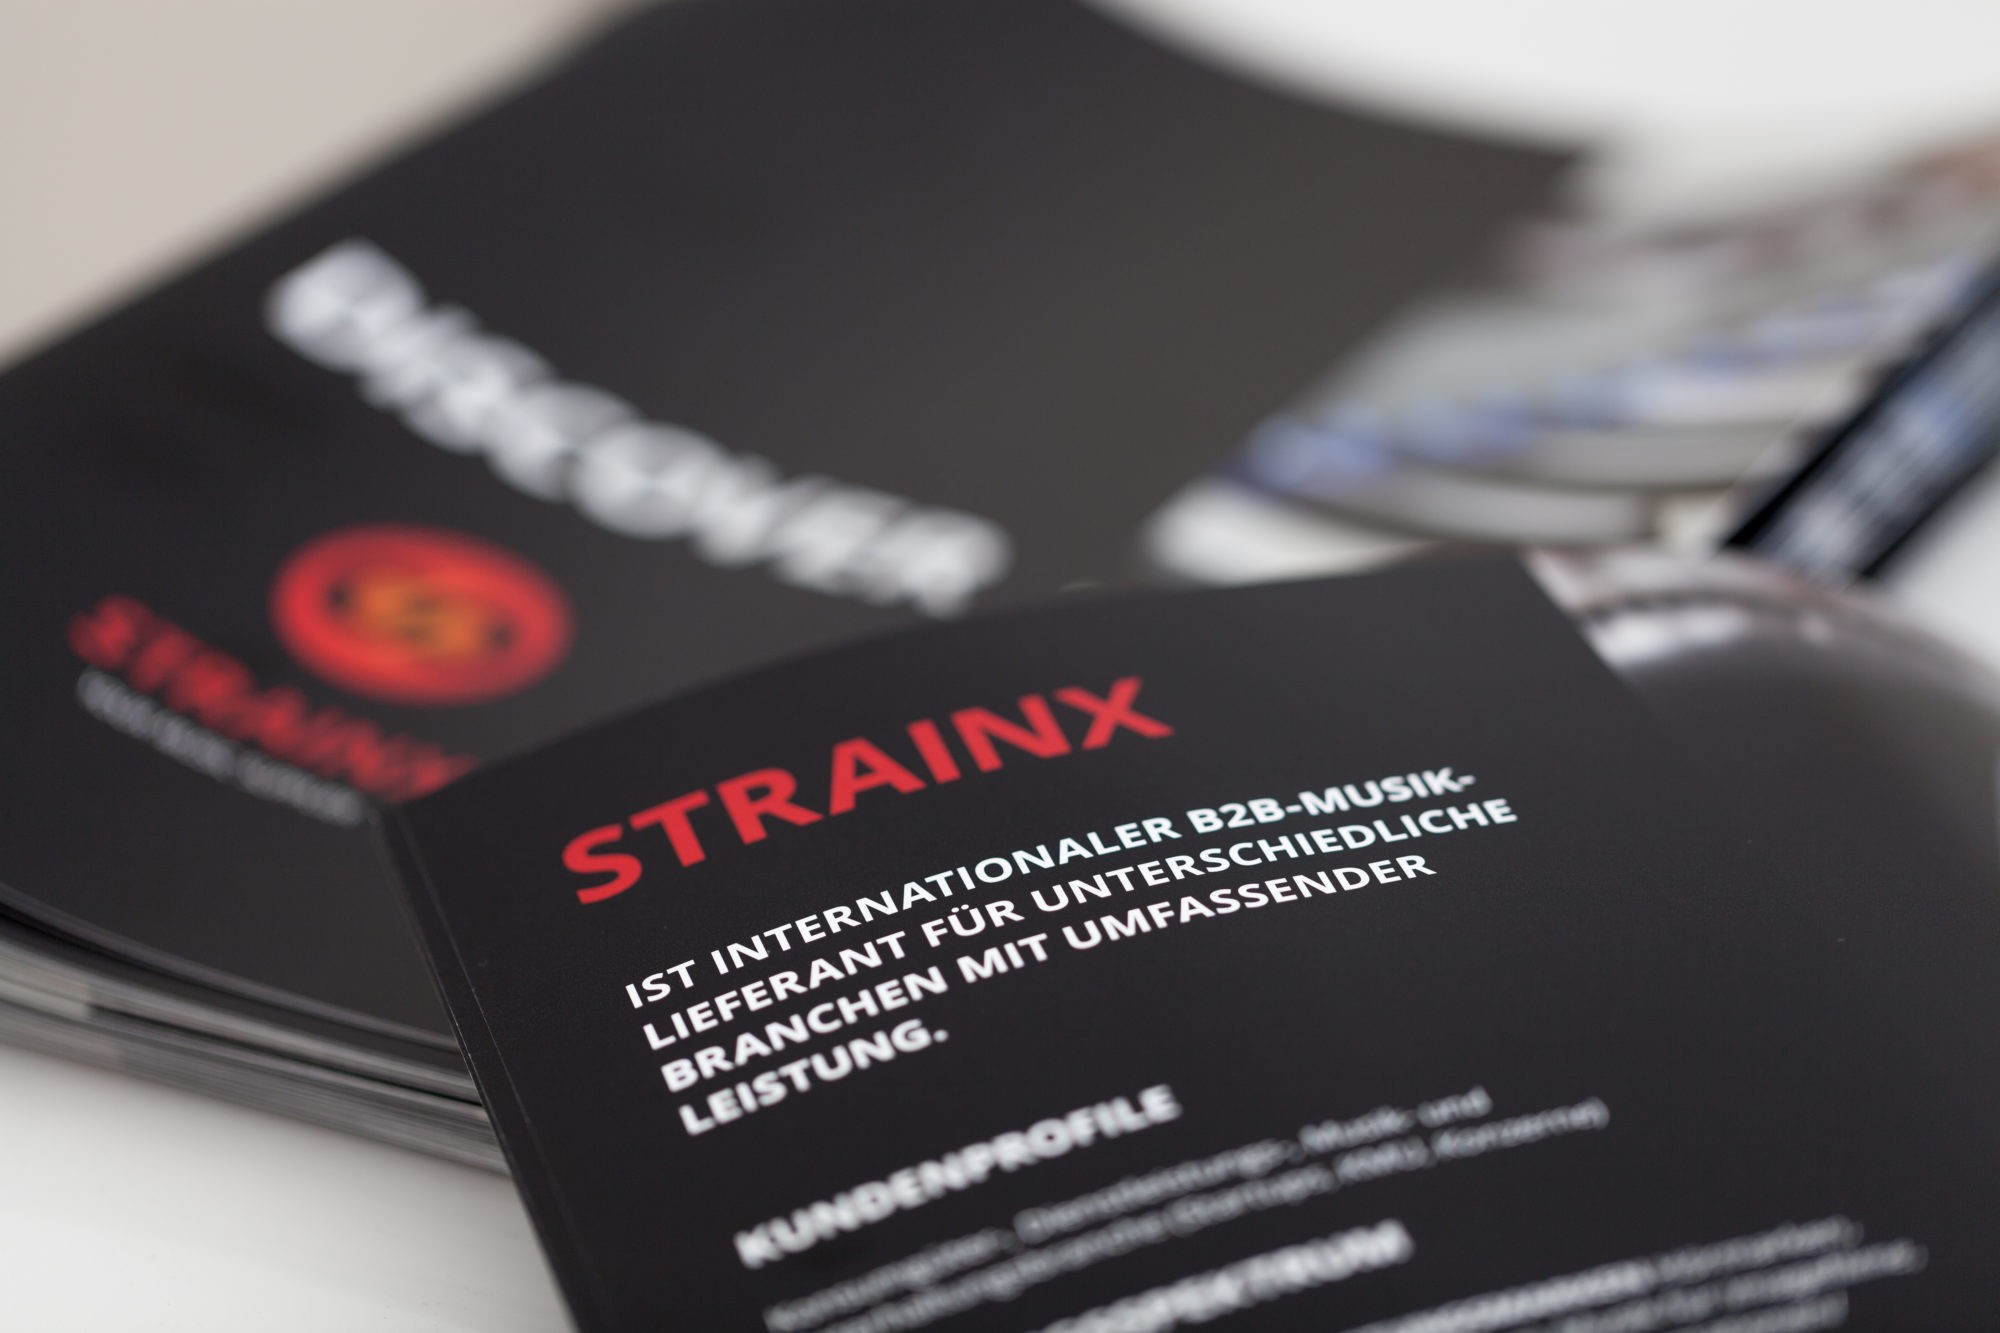 Ghostwriting / Ghostproducing, STRAINX Flyer, STRAINX